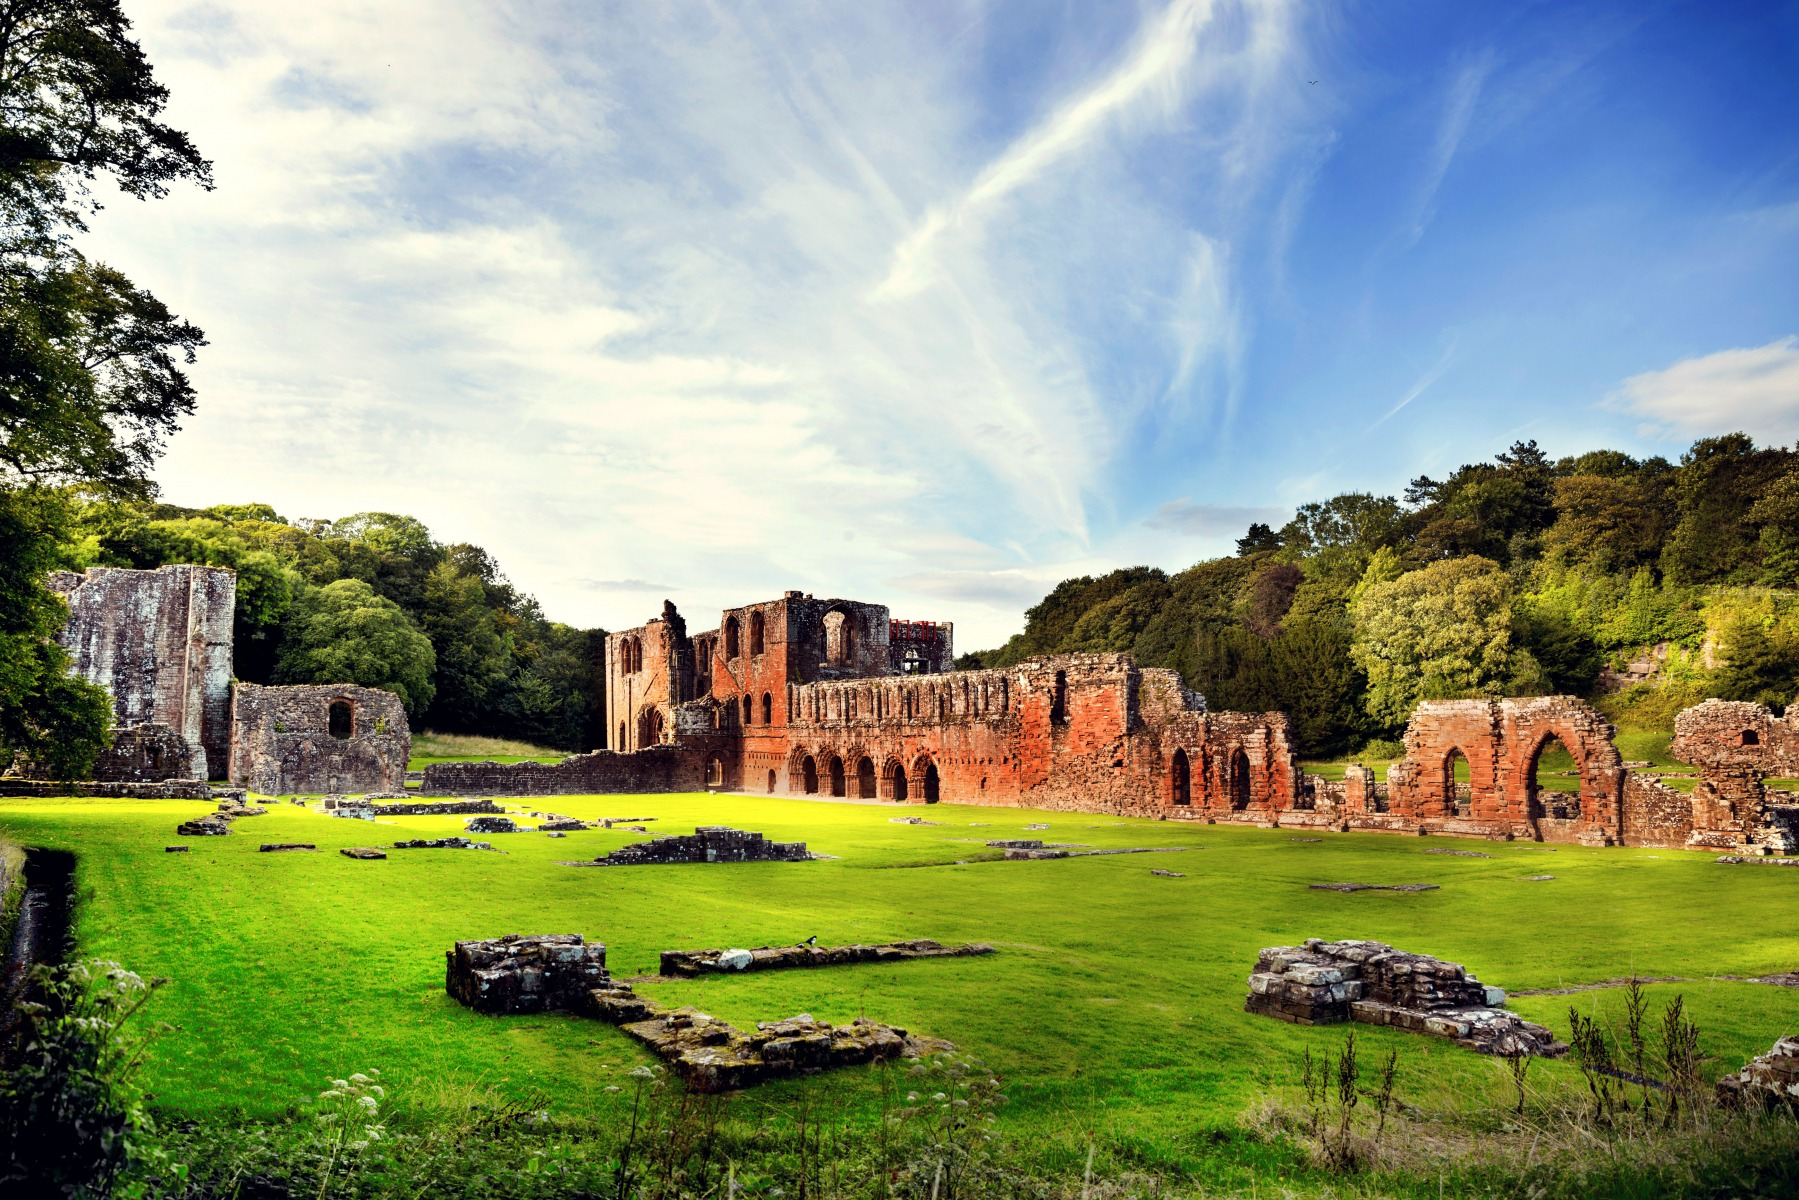 Furness Abbey | Фотограф Татьяна Малюта | foto.by фото.бай